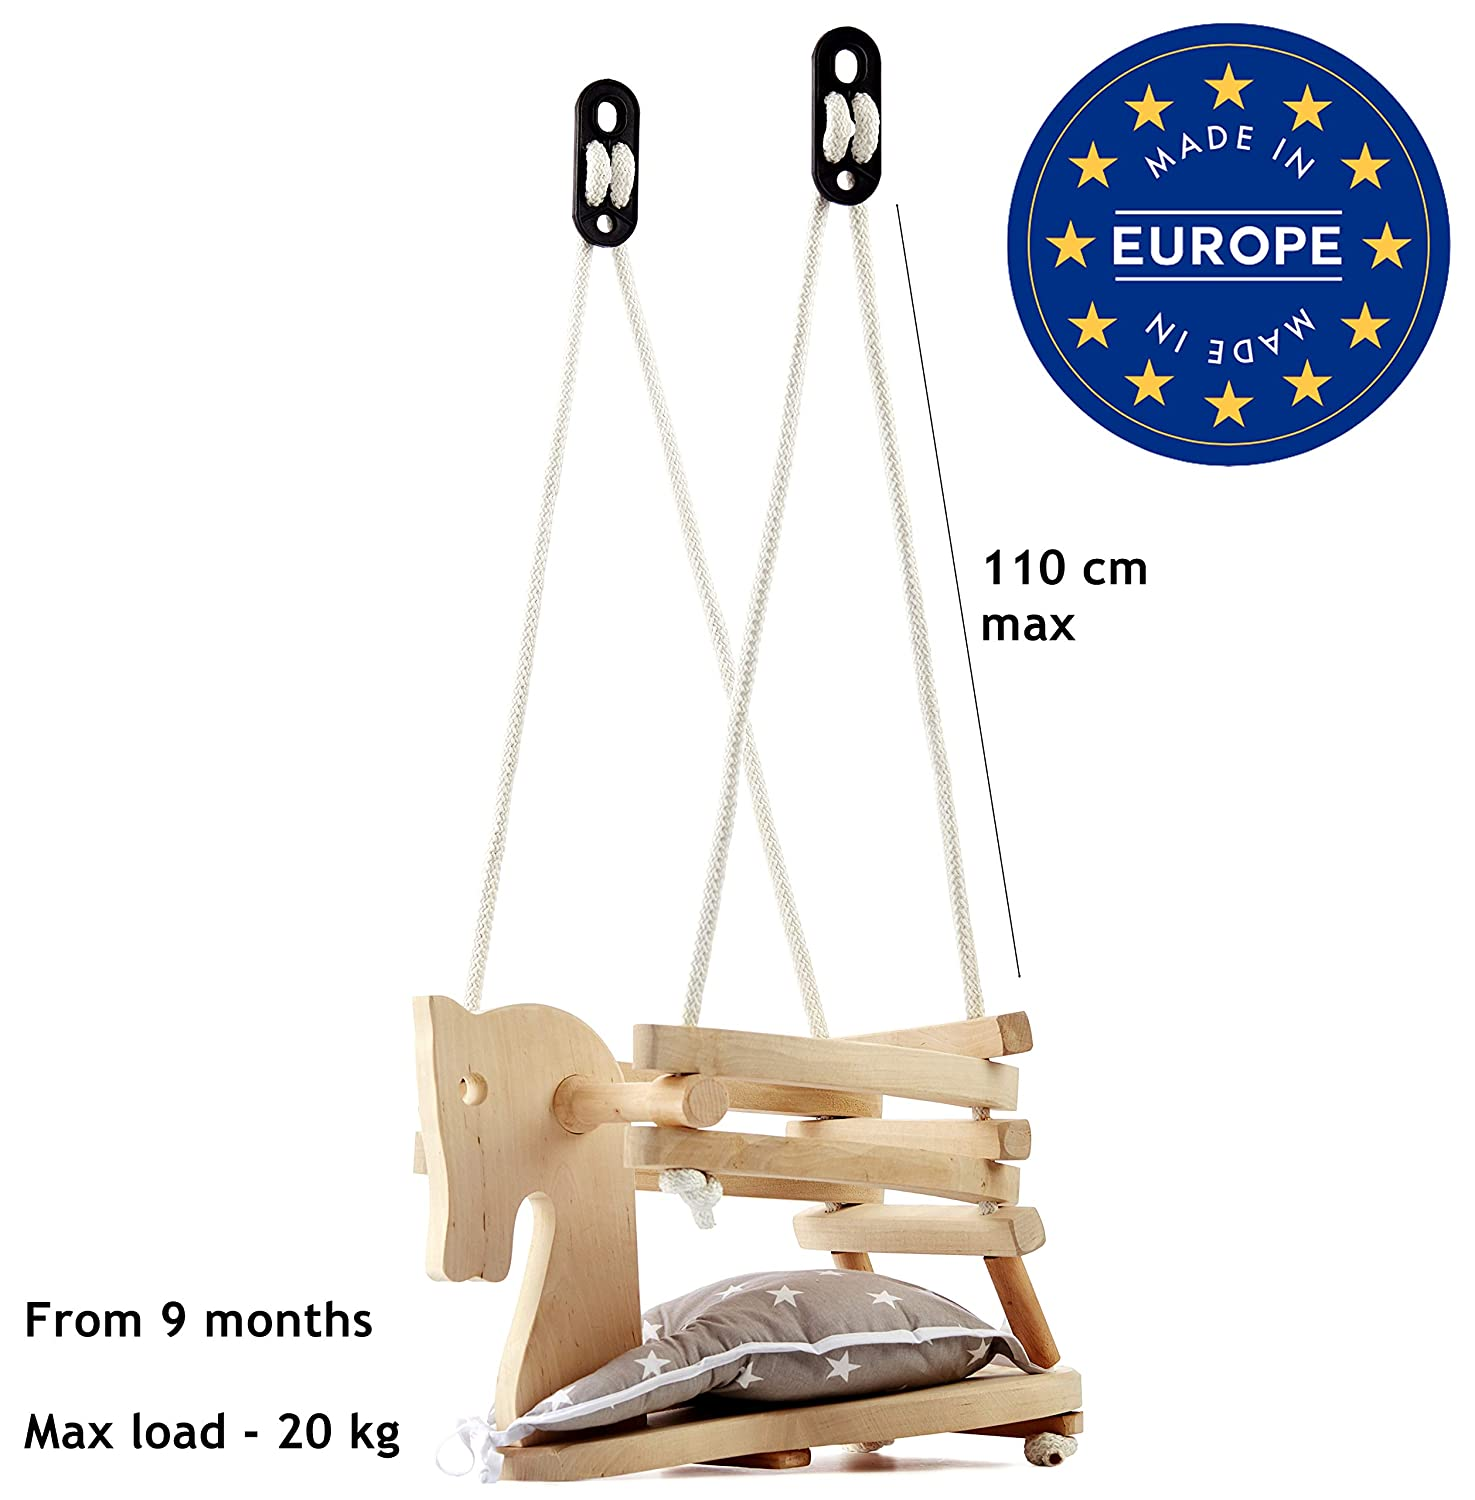 Wooden Swing Must Have Nursery or Playground Equipment For Use Indoors or Outdoors by Malimas Baby Toddler Natural Wood Horse Figure Safety Swing Seat Chair